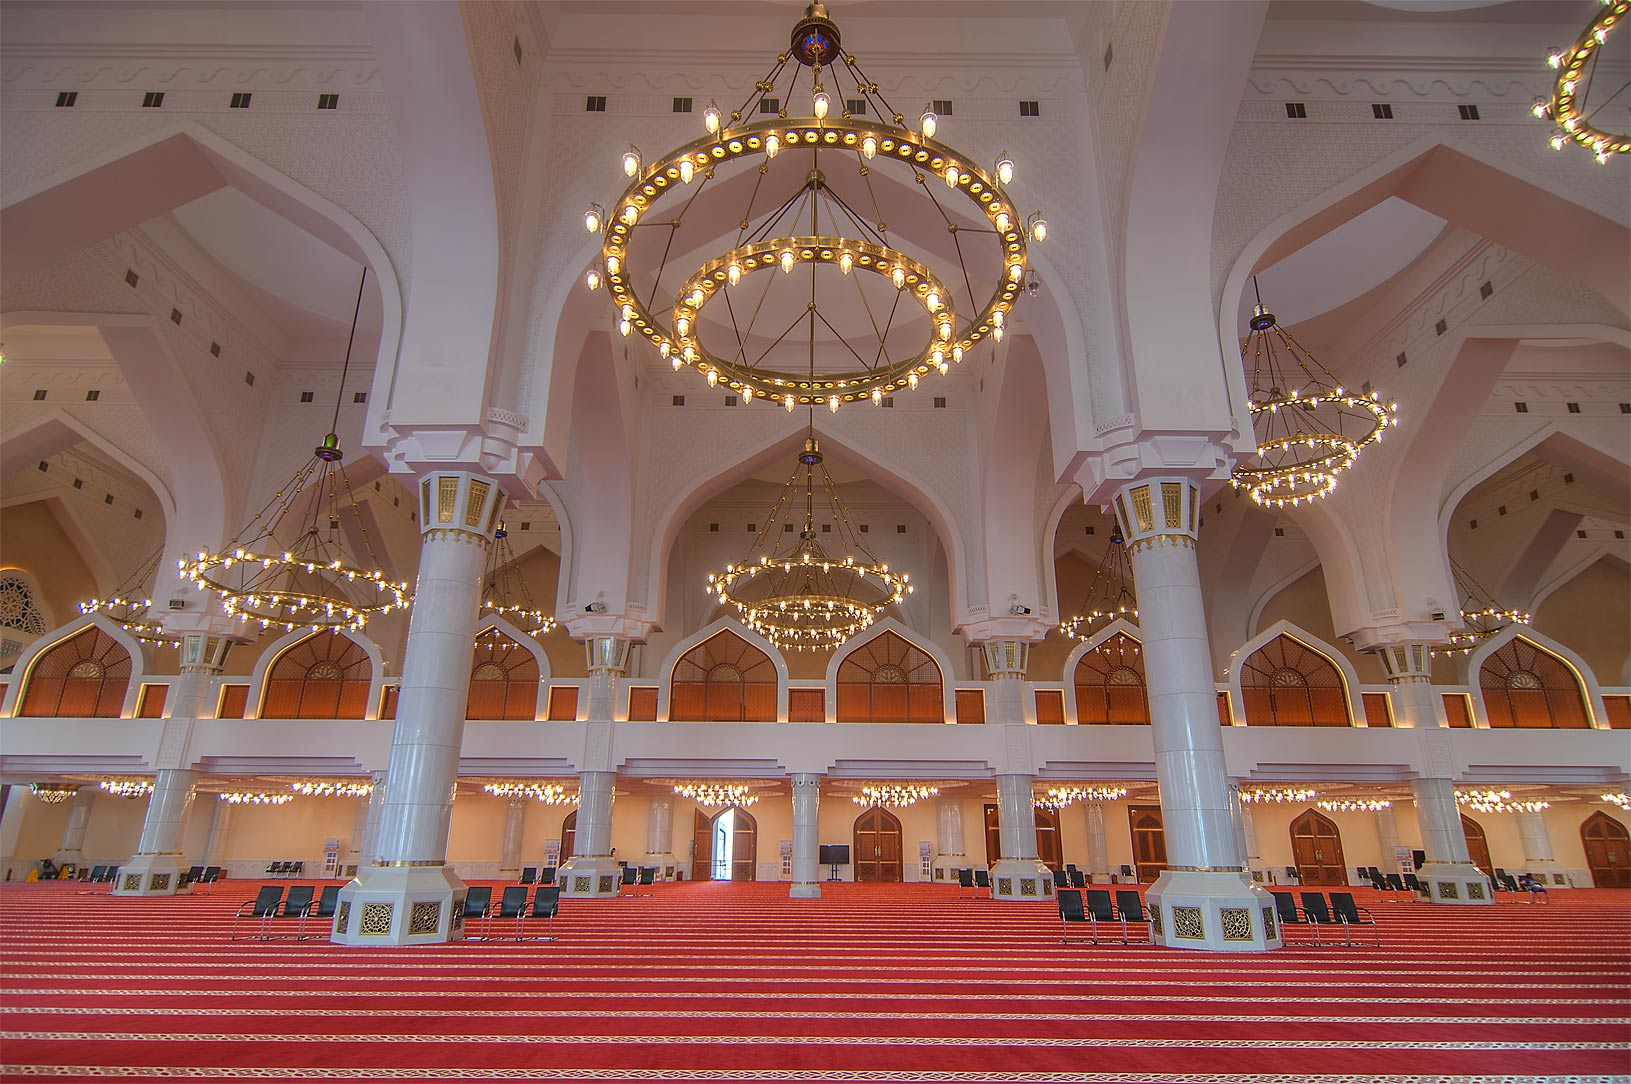 Columns and chandeliers inside State Mosque...Ibn Abdul Wahhab Mosque). Doha, Qatar